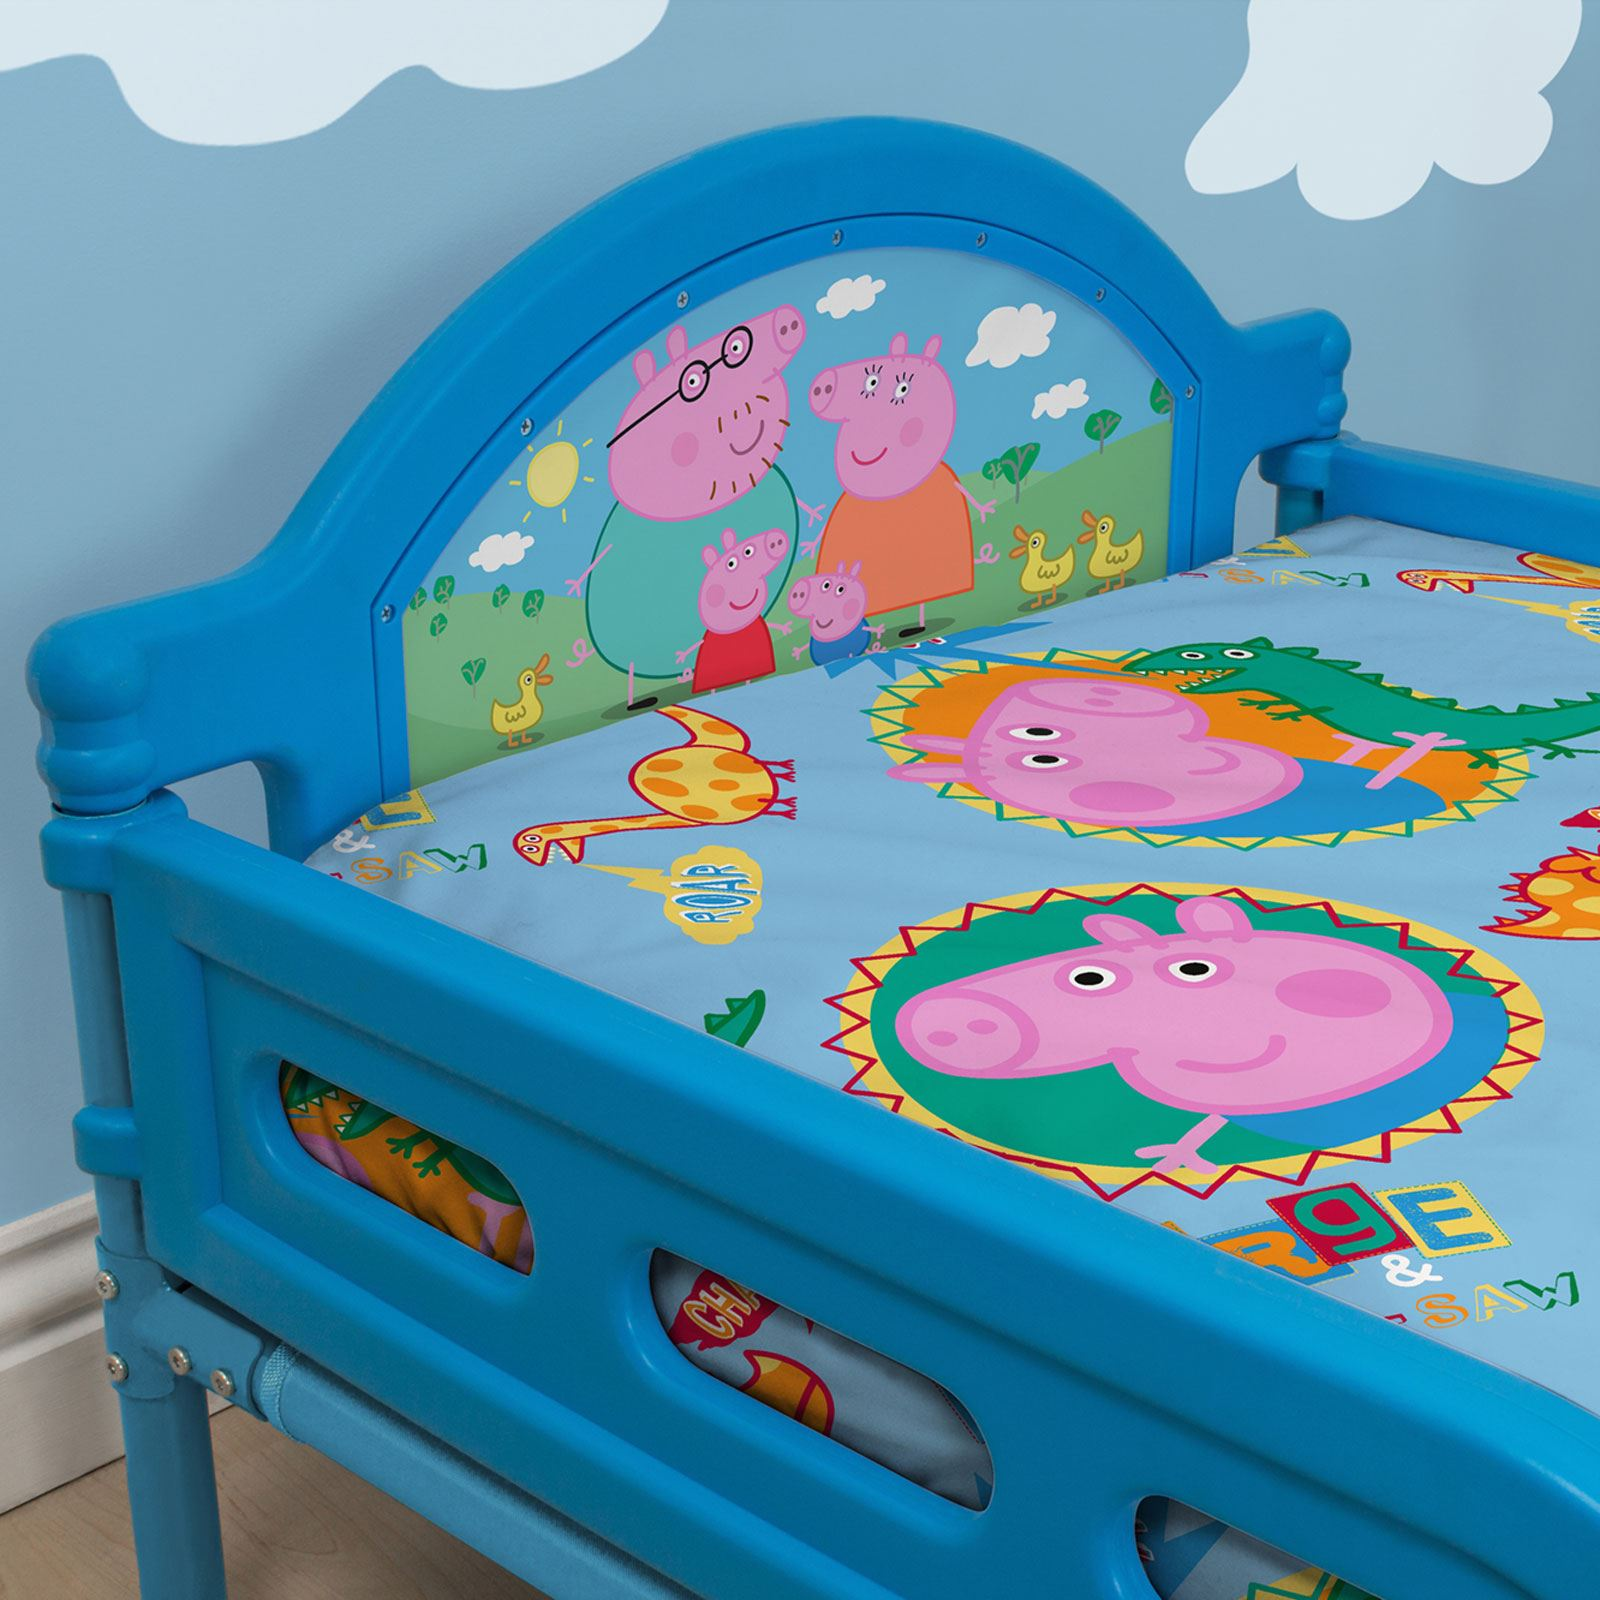 Peppa pig george 39 family 39 junior toddler bed new bedroom for George pig bedroom ideas